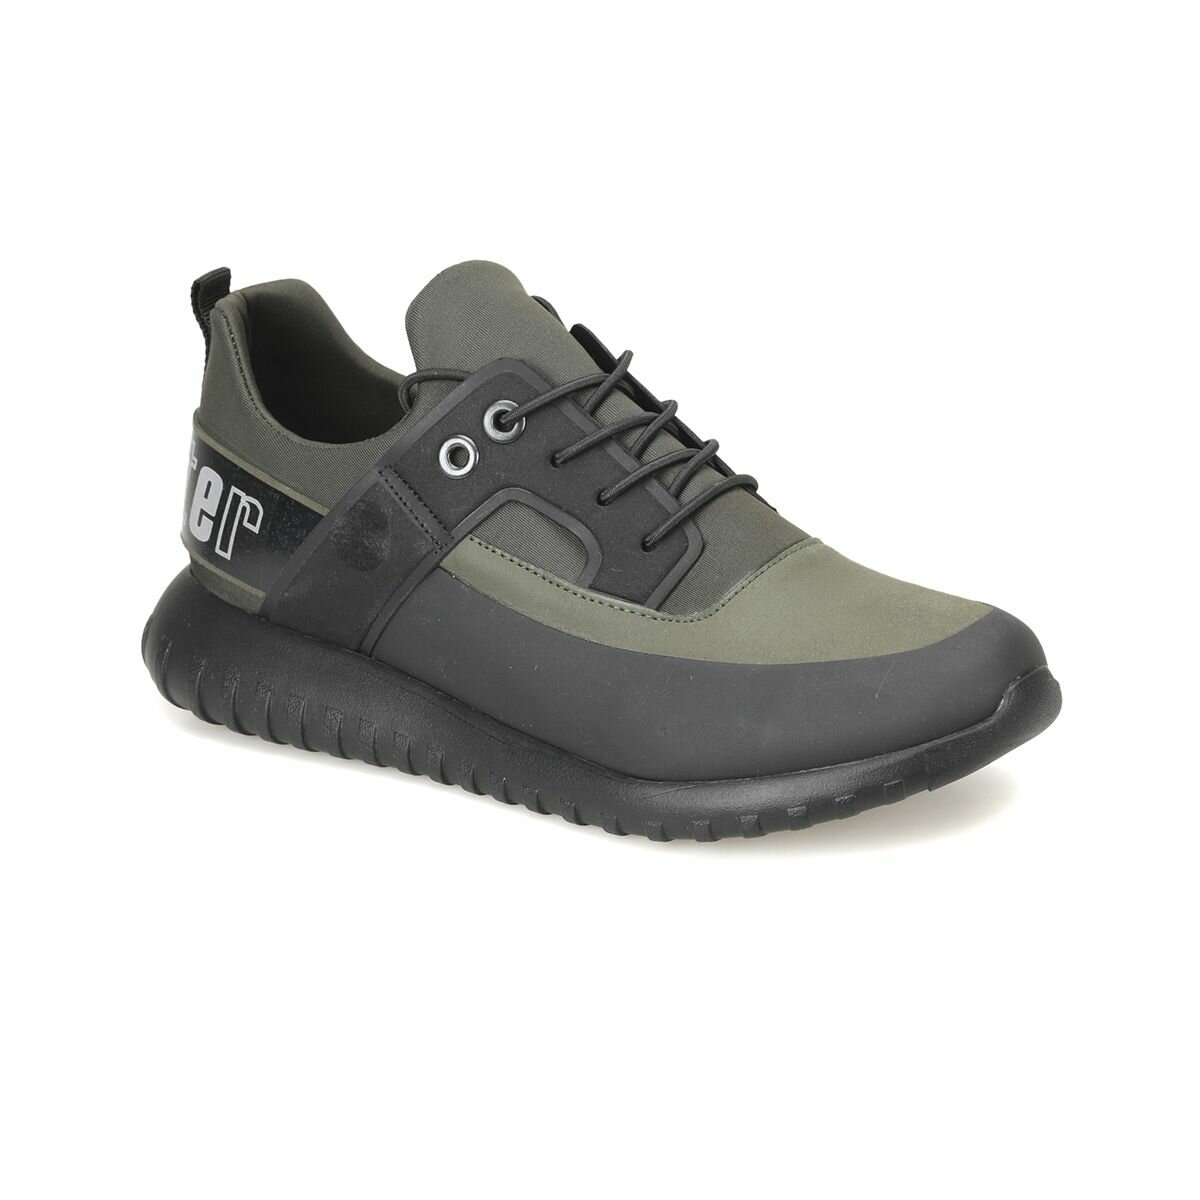 FLO 166 Khaki Men 'S Shoes Forester